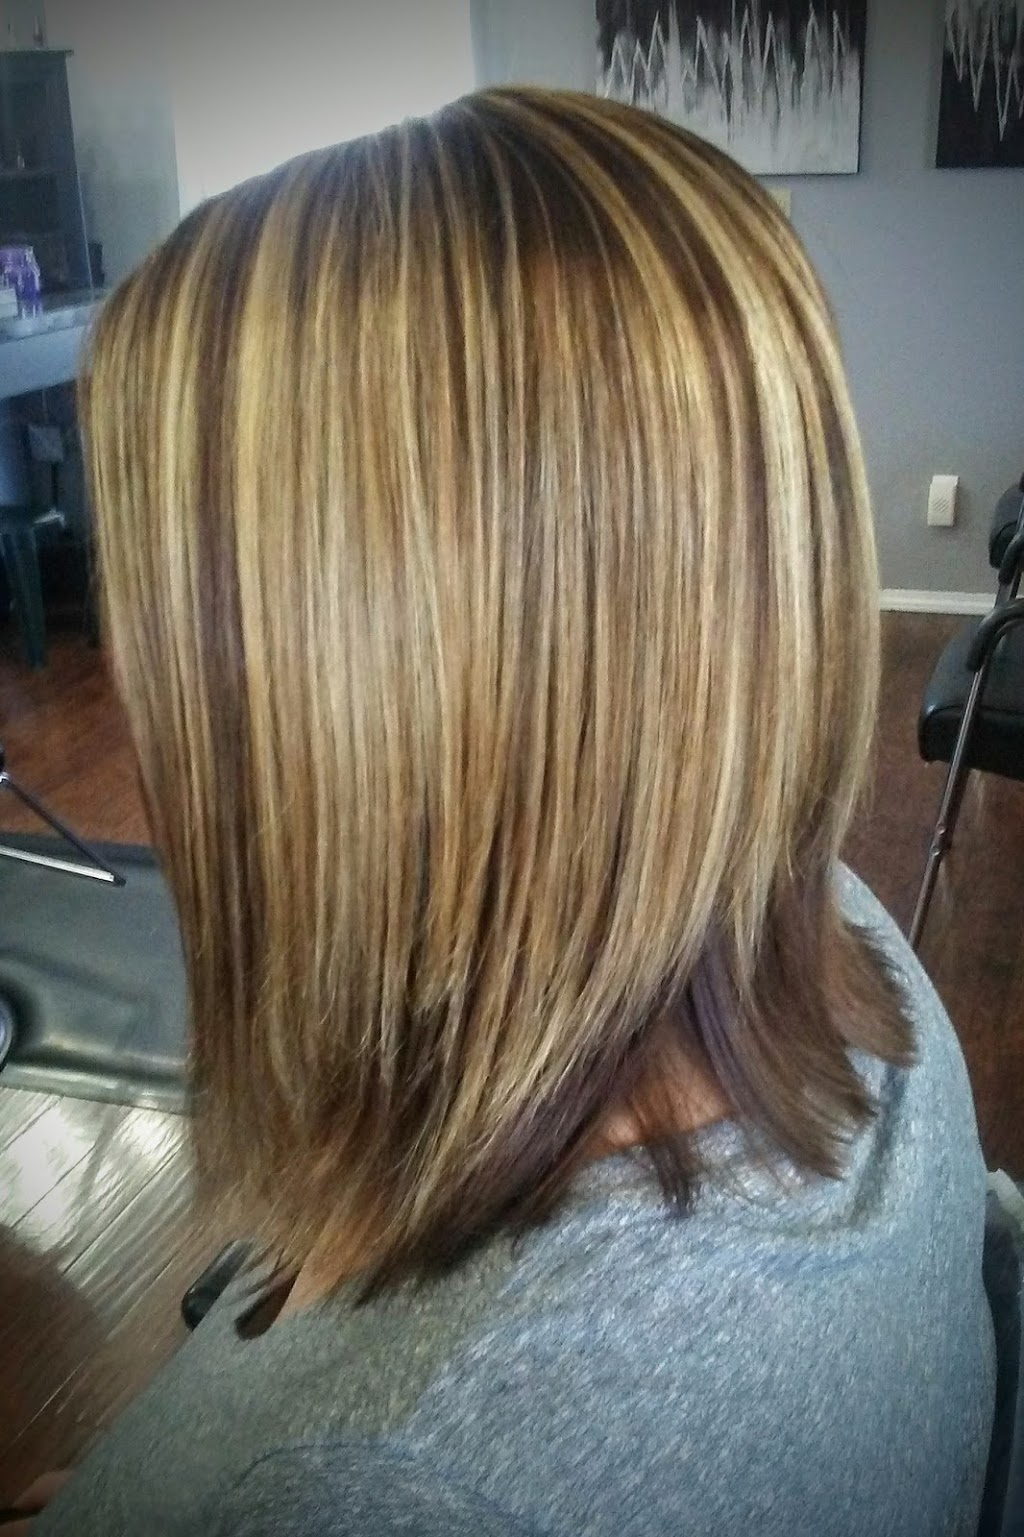 Nikkis Hair Shenanigans at All About You Hair And Tanning Salon - hair care  | Photo 5 of 10 | Address: 9227 County Line Rd, De Motte, IN 46310, USA | Phone: (765) 761-7119